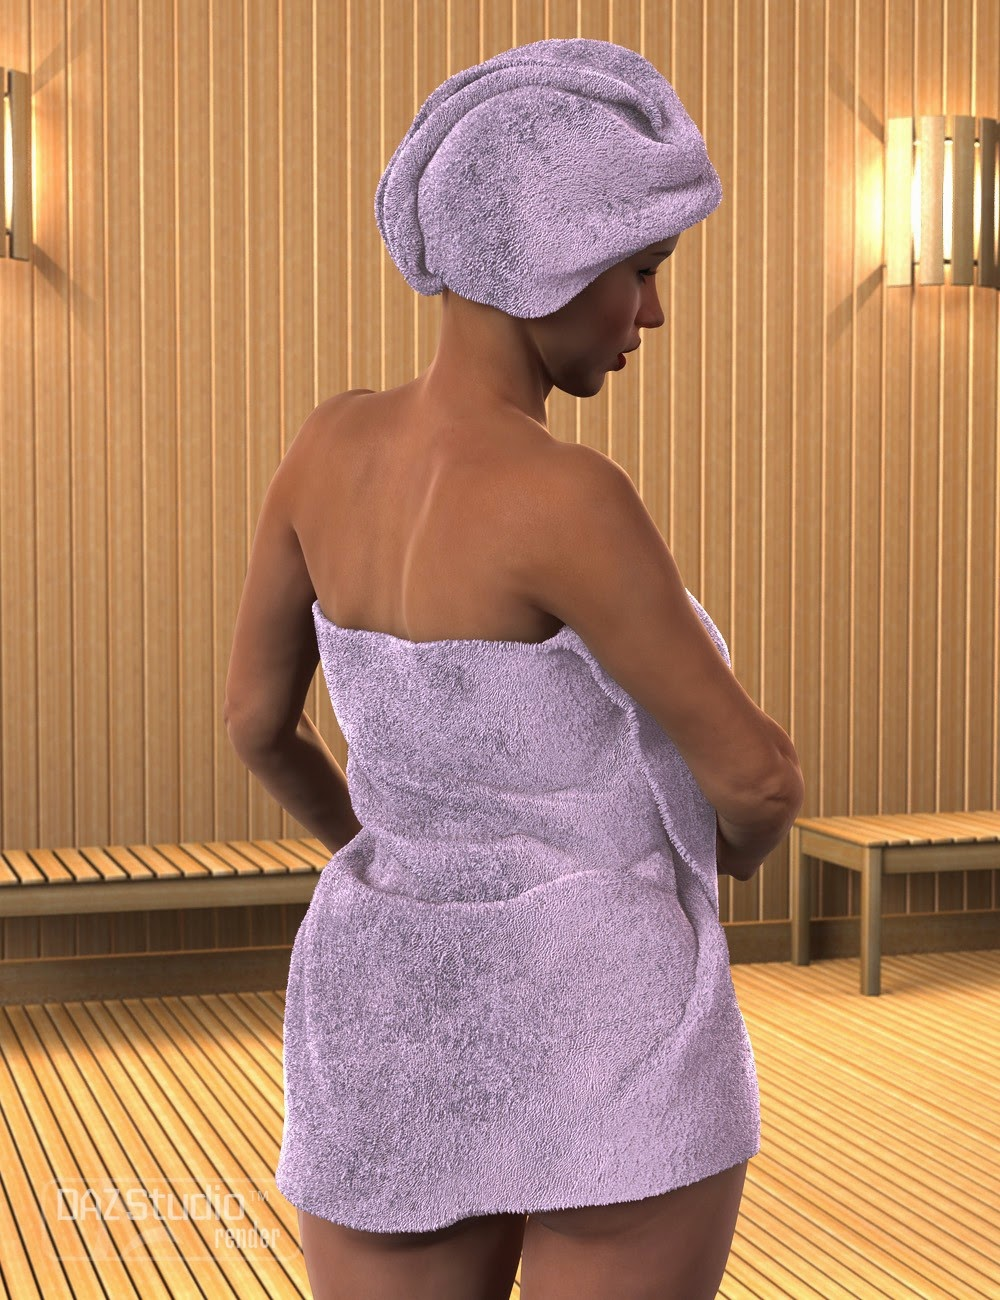 Download Daz Studio 3 For Free Daz 3d Bath Wear For Genesis 2 Female